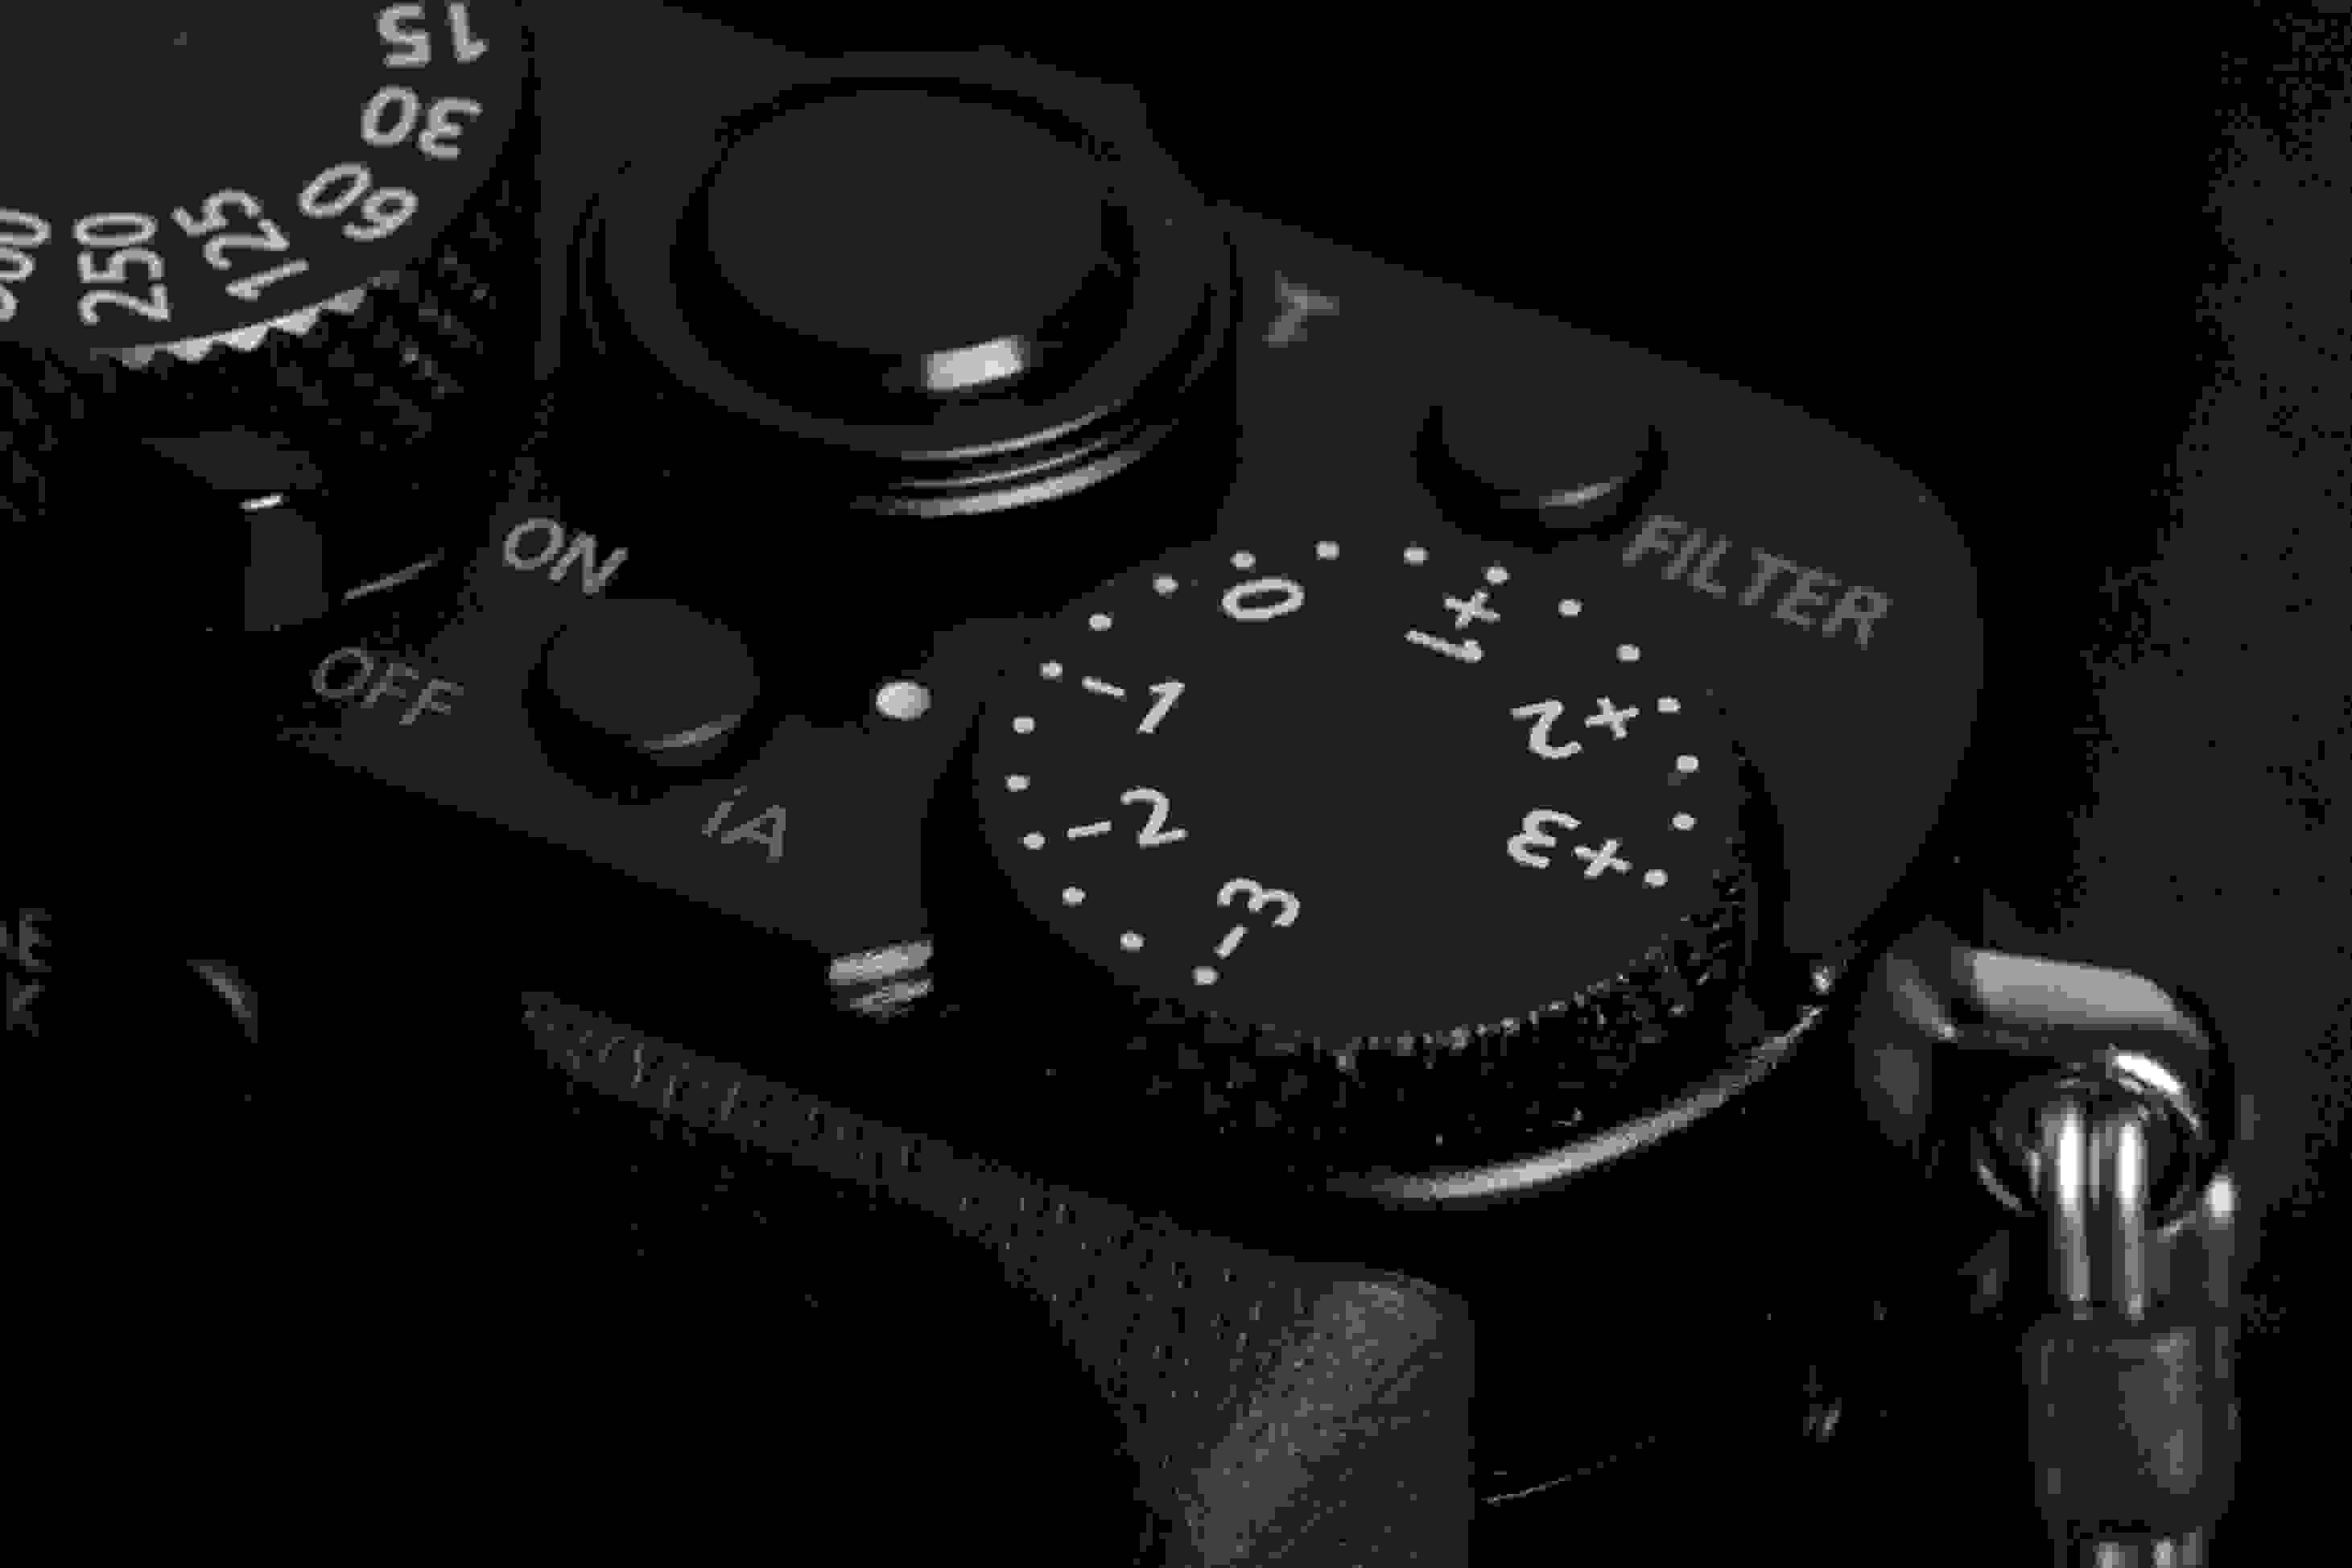 A photograph of the Panasonic Lumix LX100's exposure compensation dial.